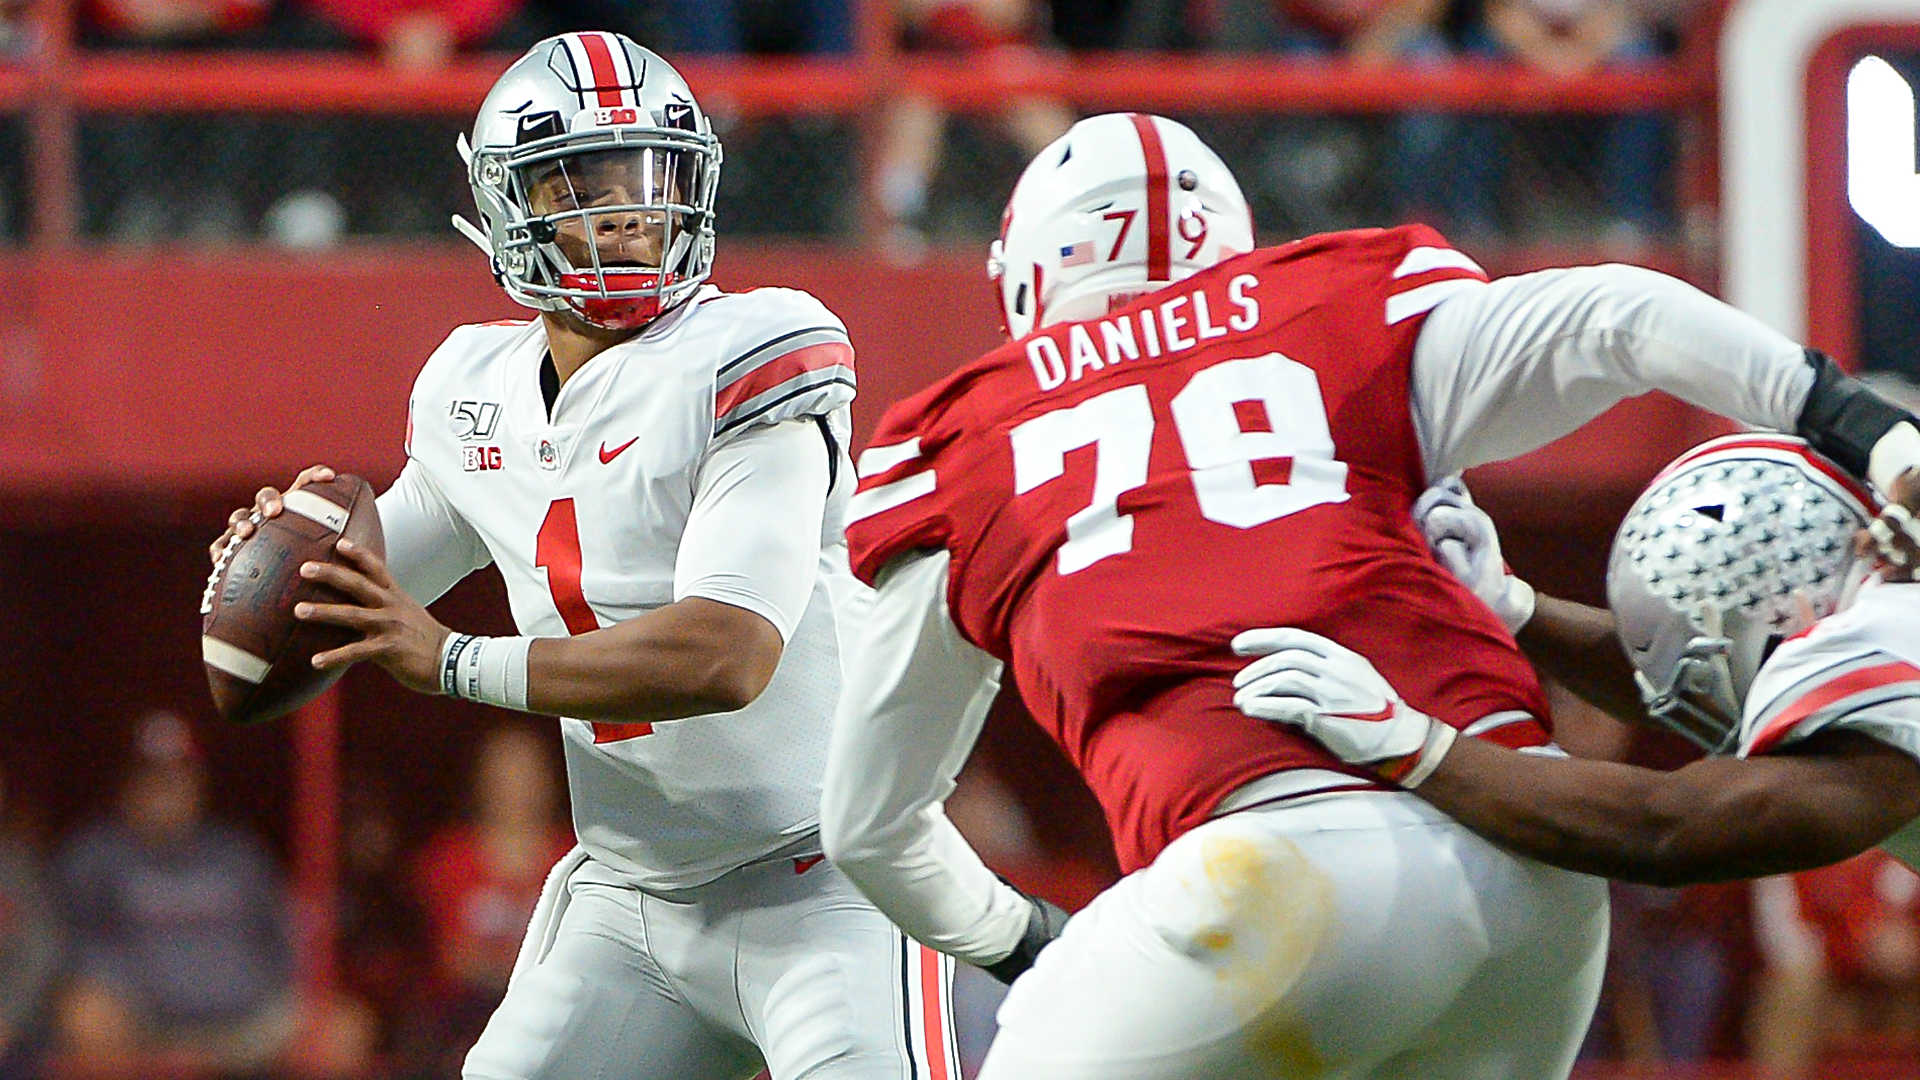 Ohio State stands out as nation's most complete team after September